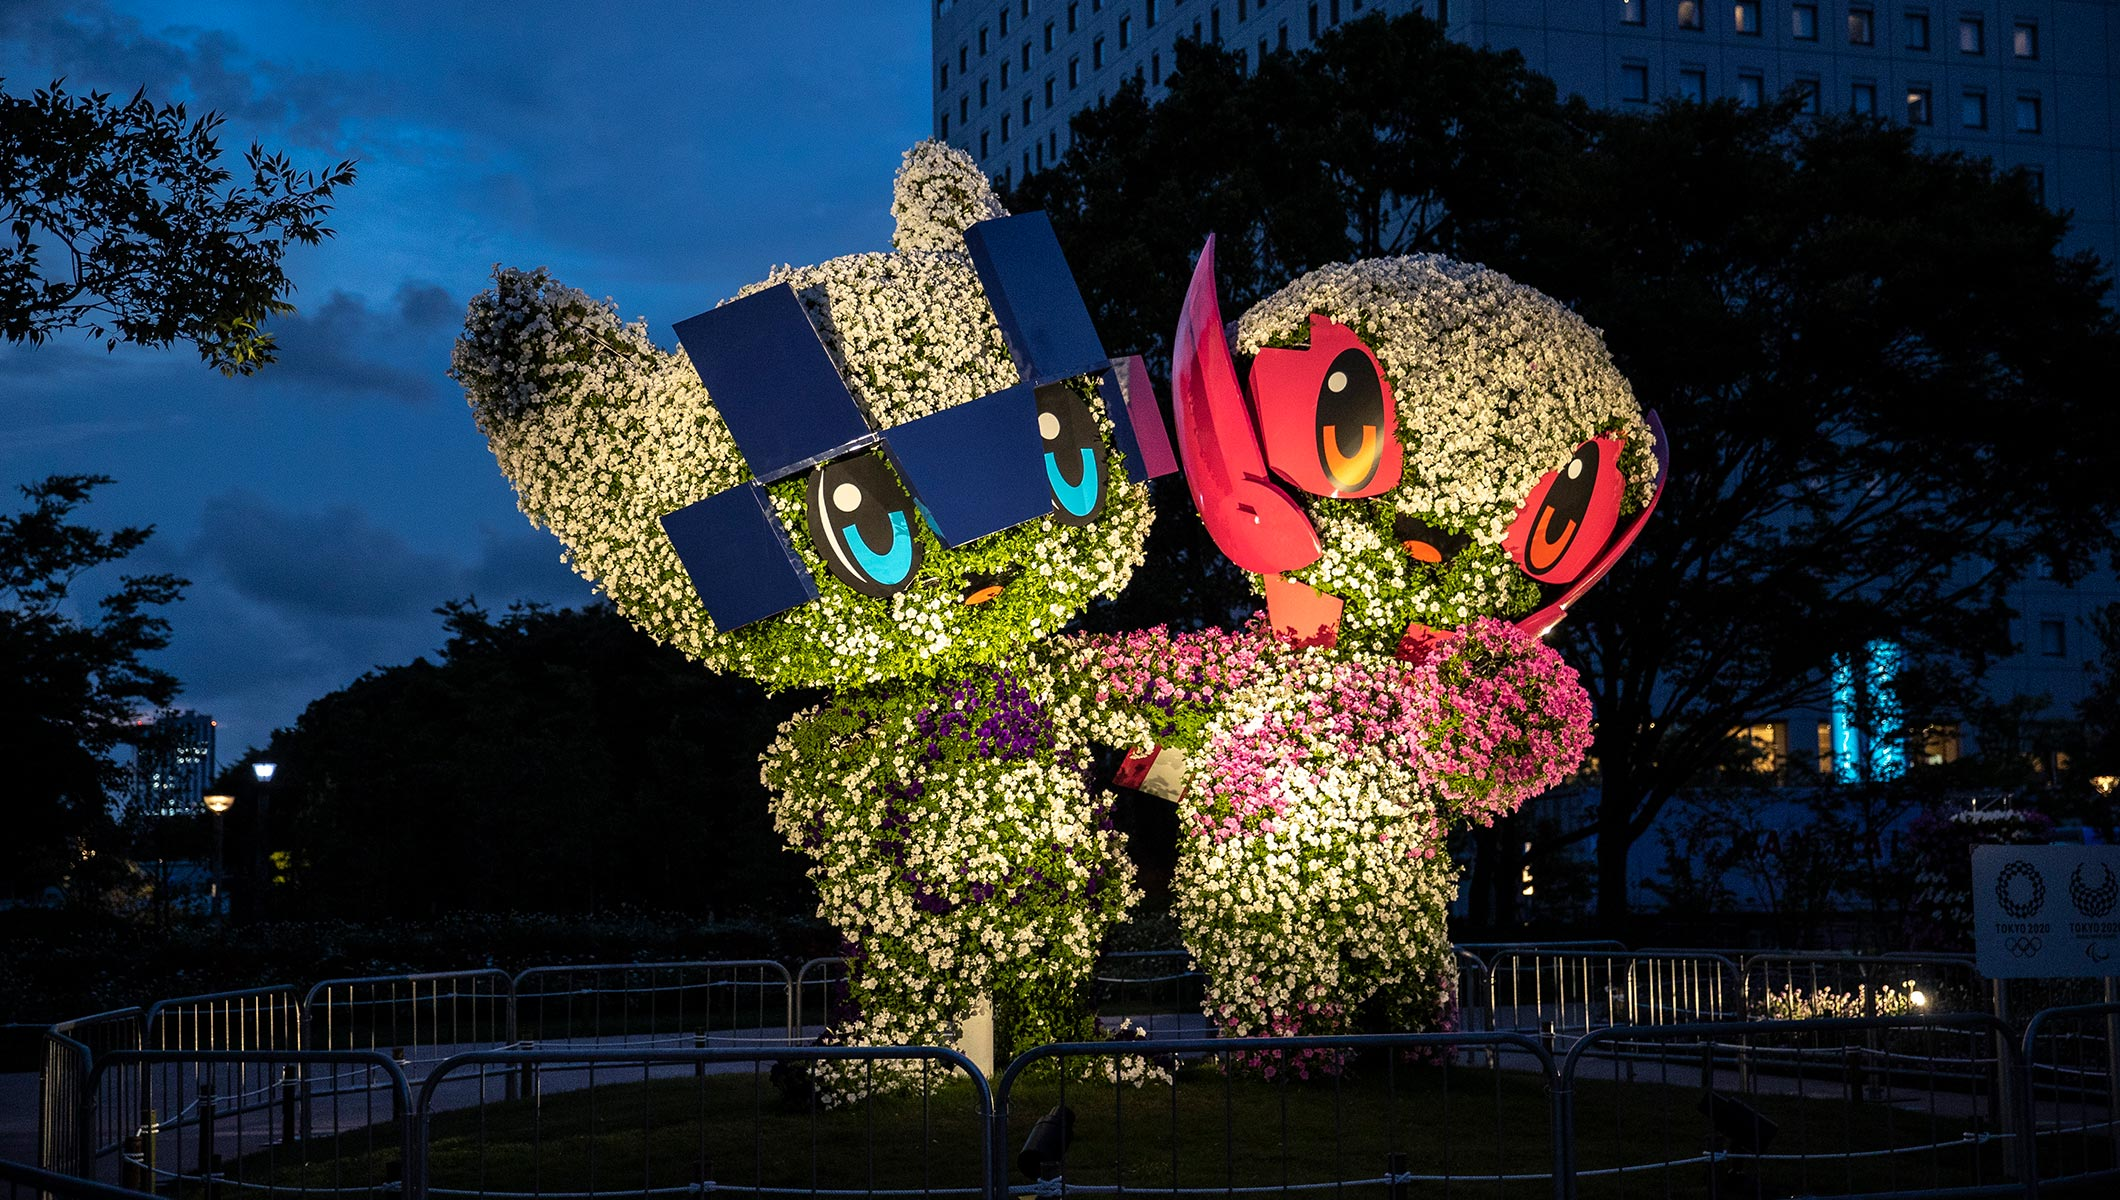 Floral arrangements of Mascots of Tokyo 2020 Olympic Games